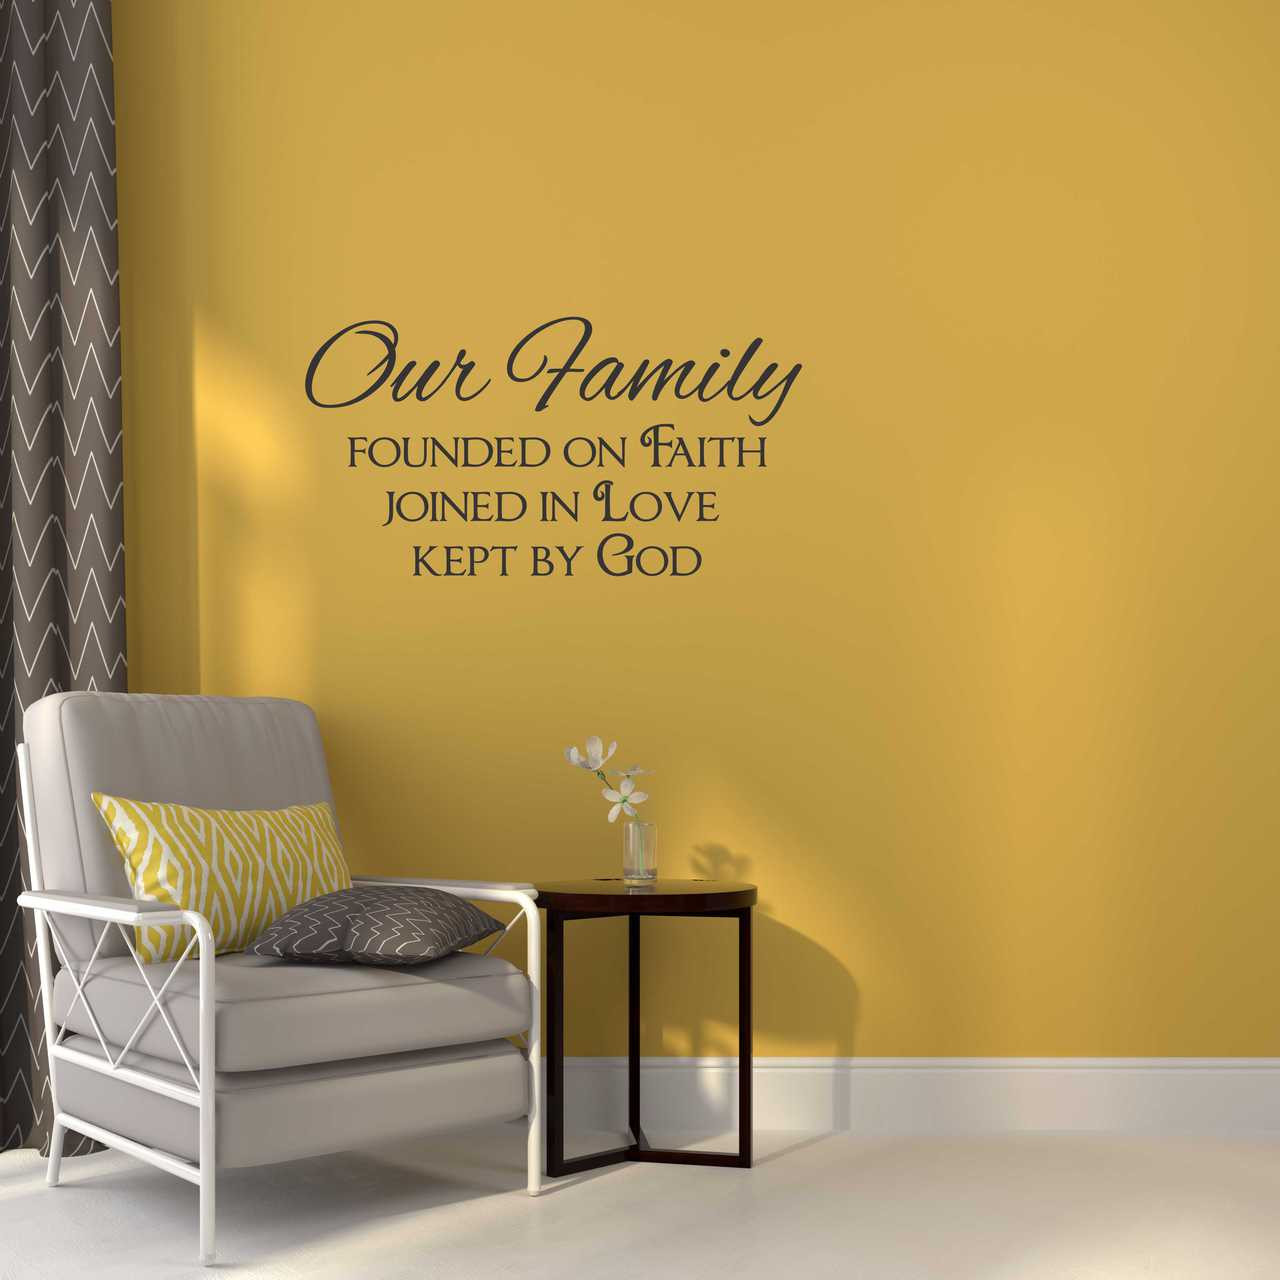 Our Family Founded on Faith, Love, God Wall Decal Quote Lettering